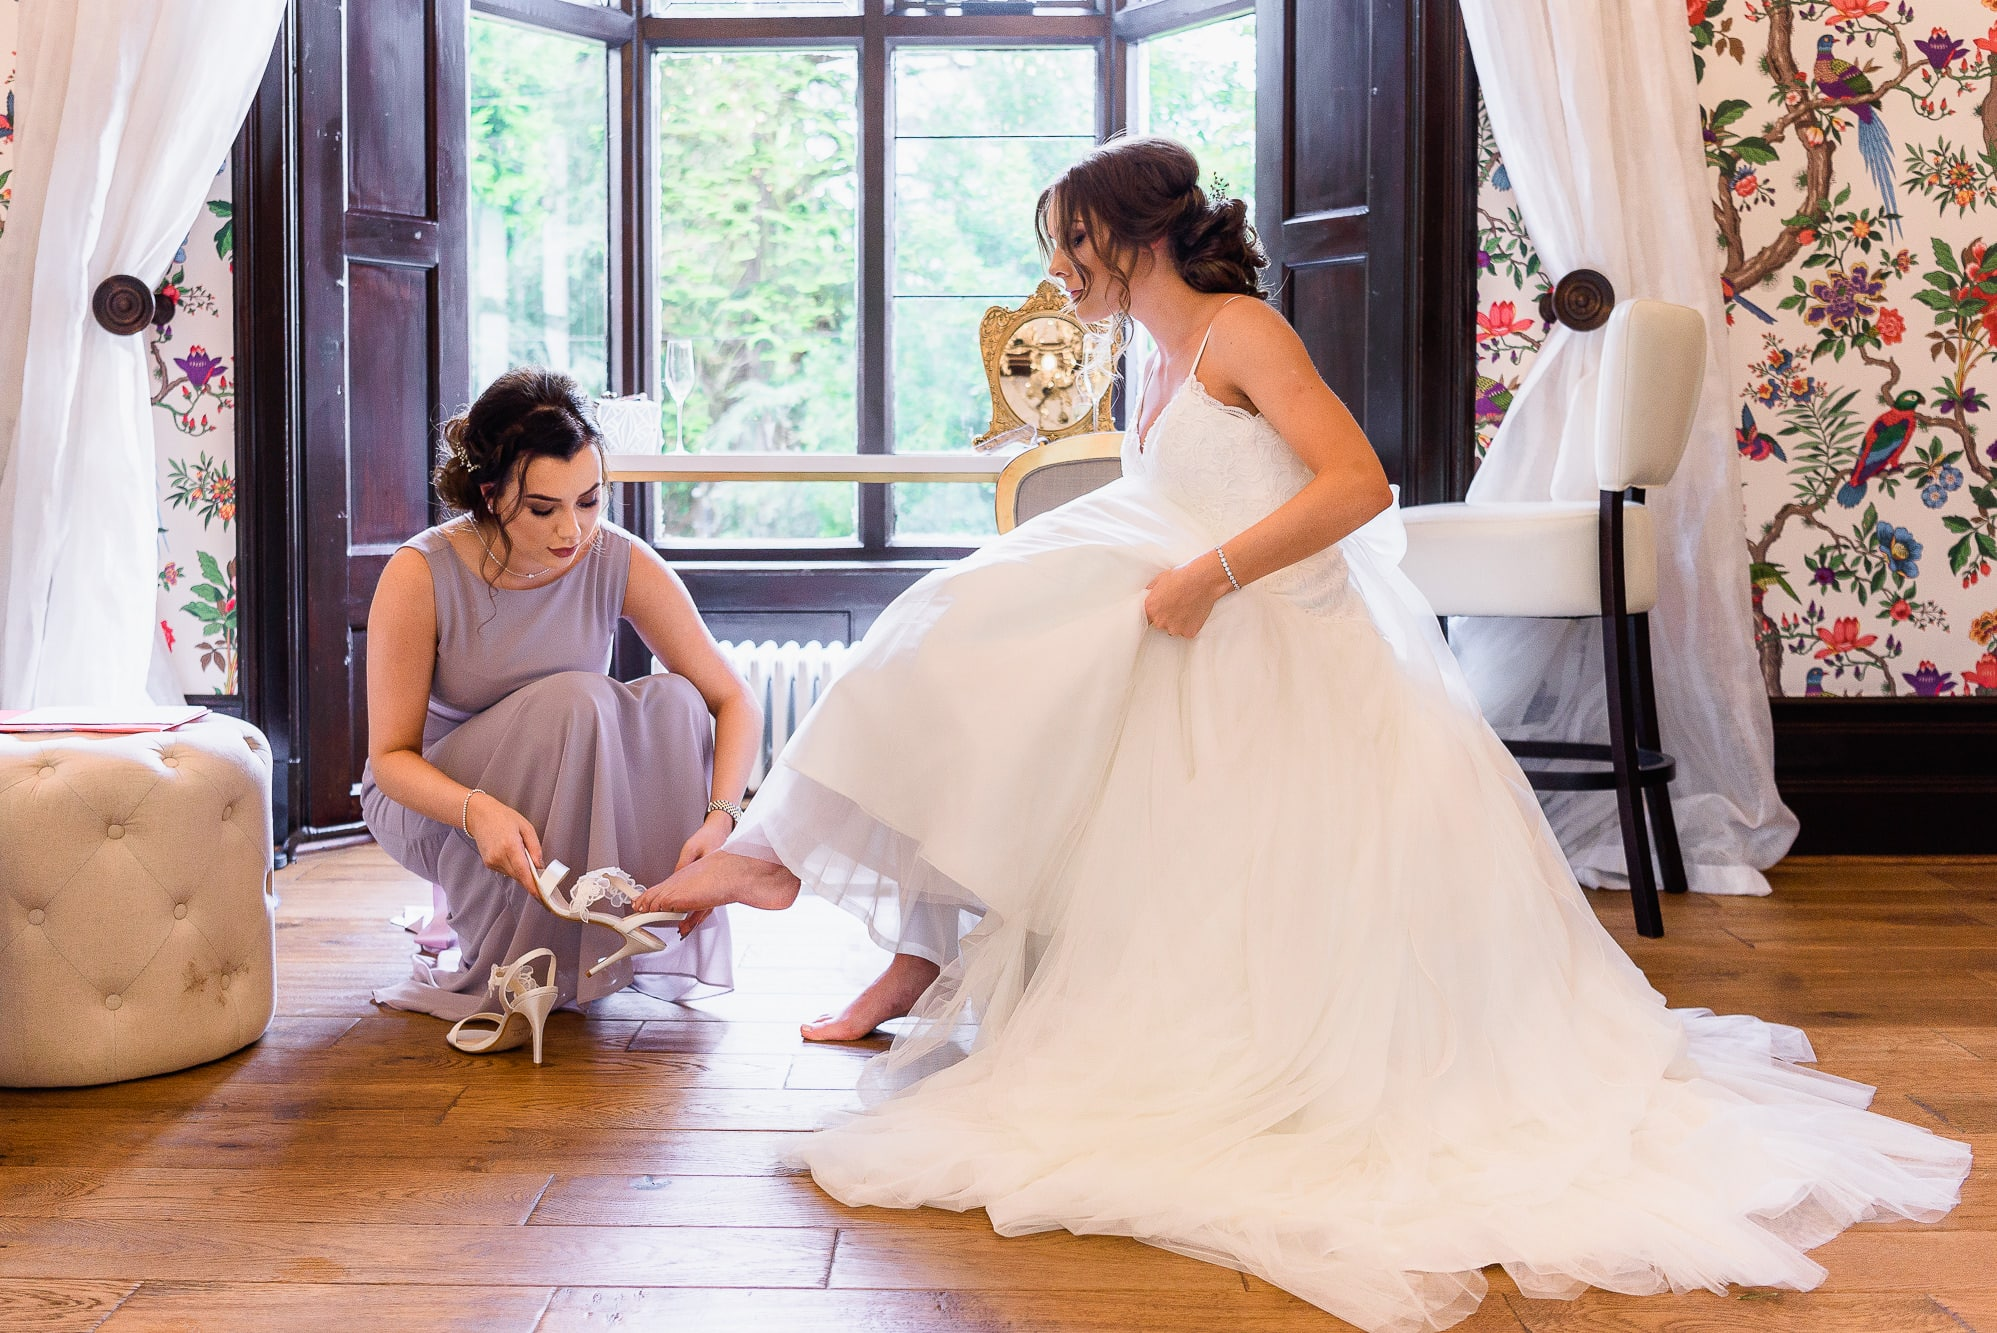 Putting on her wedding shoes